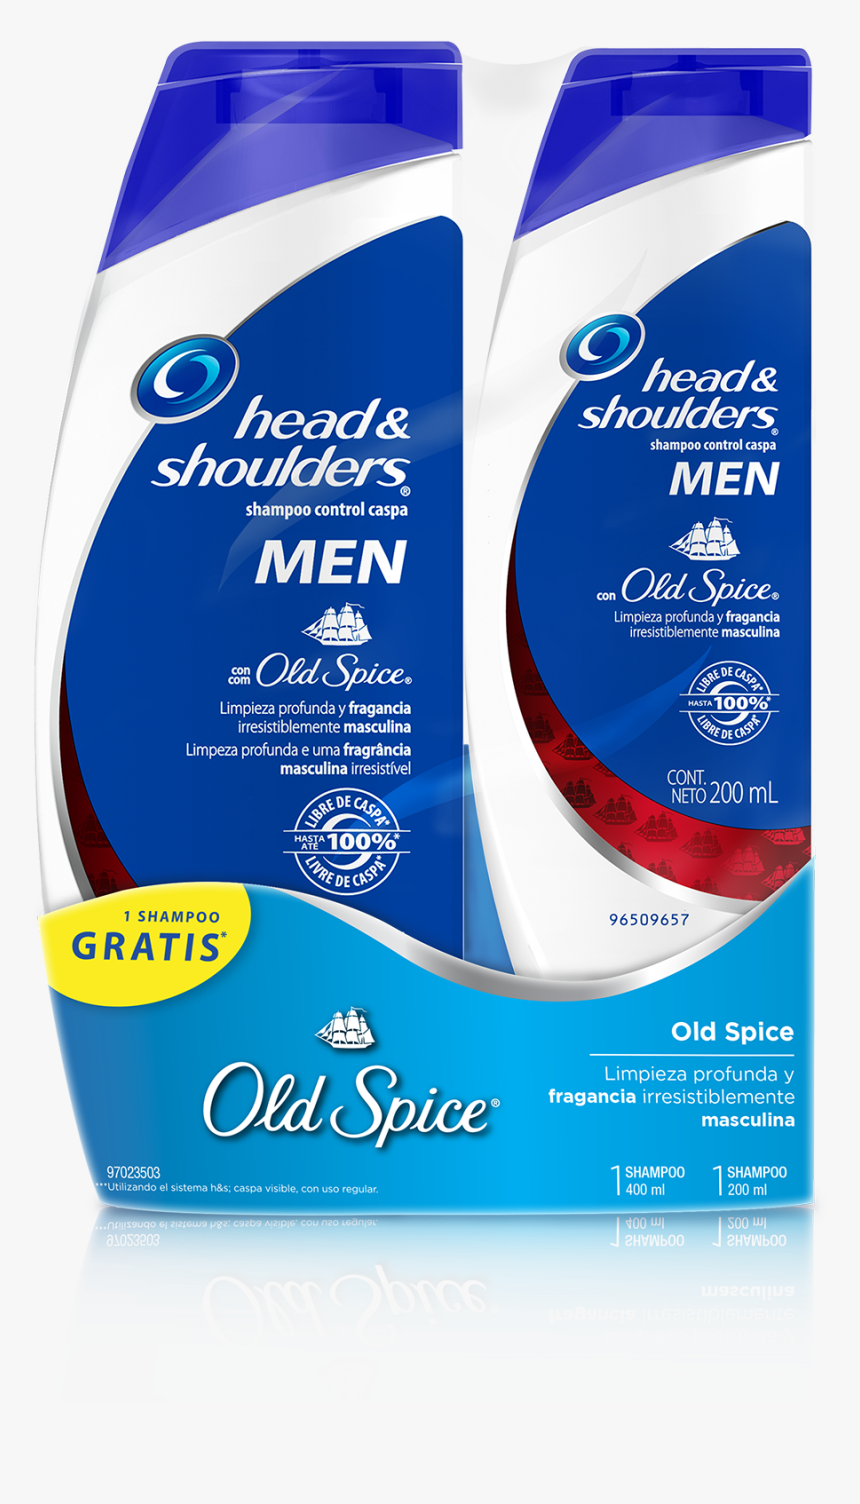 Head And Shoulders Para Hombres, HD Png Download, Free Download